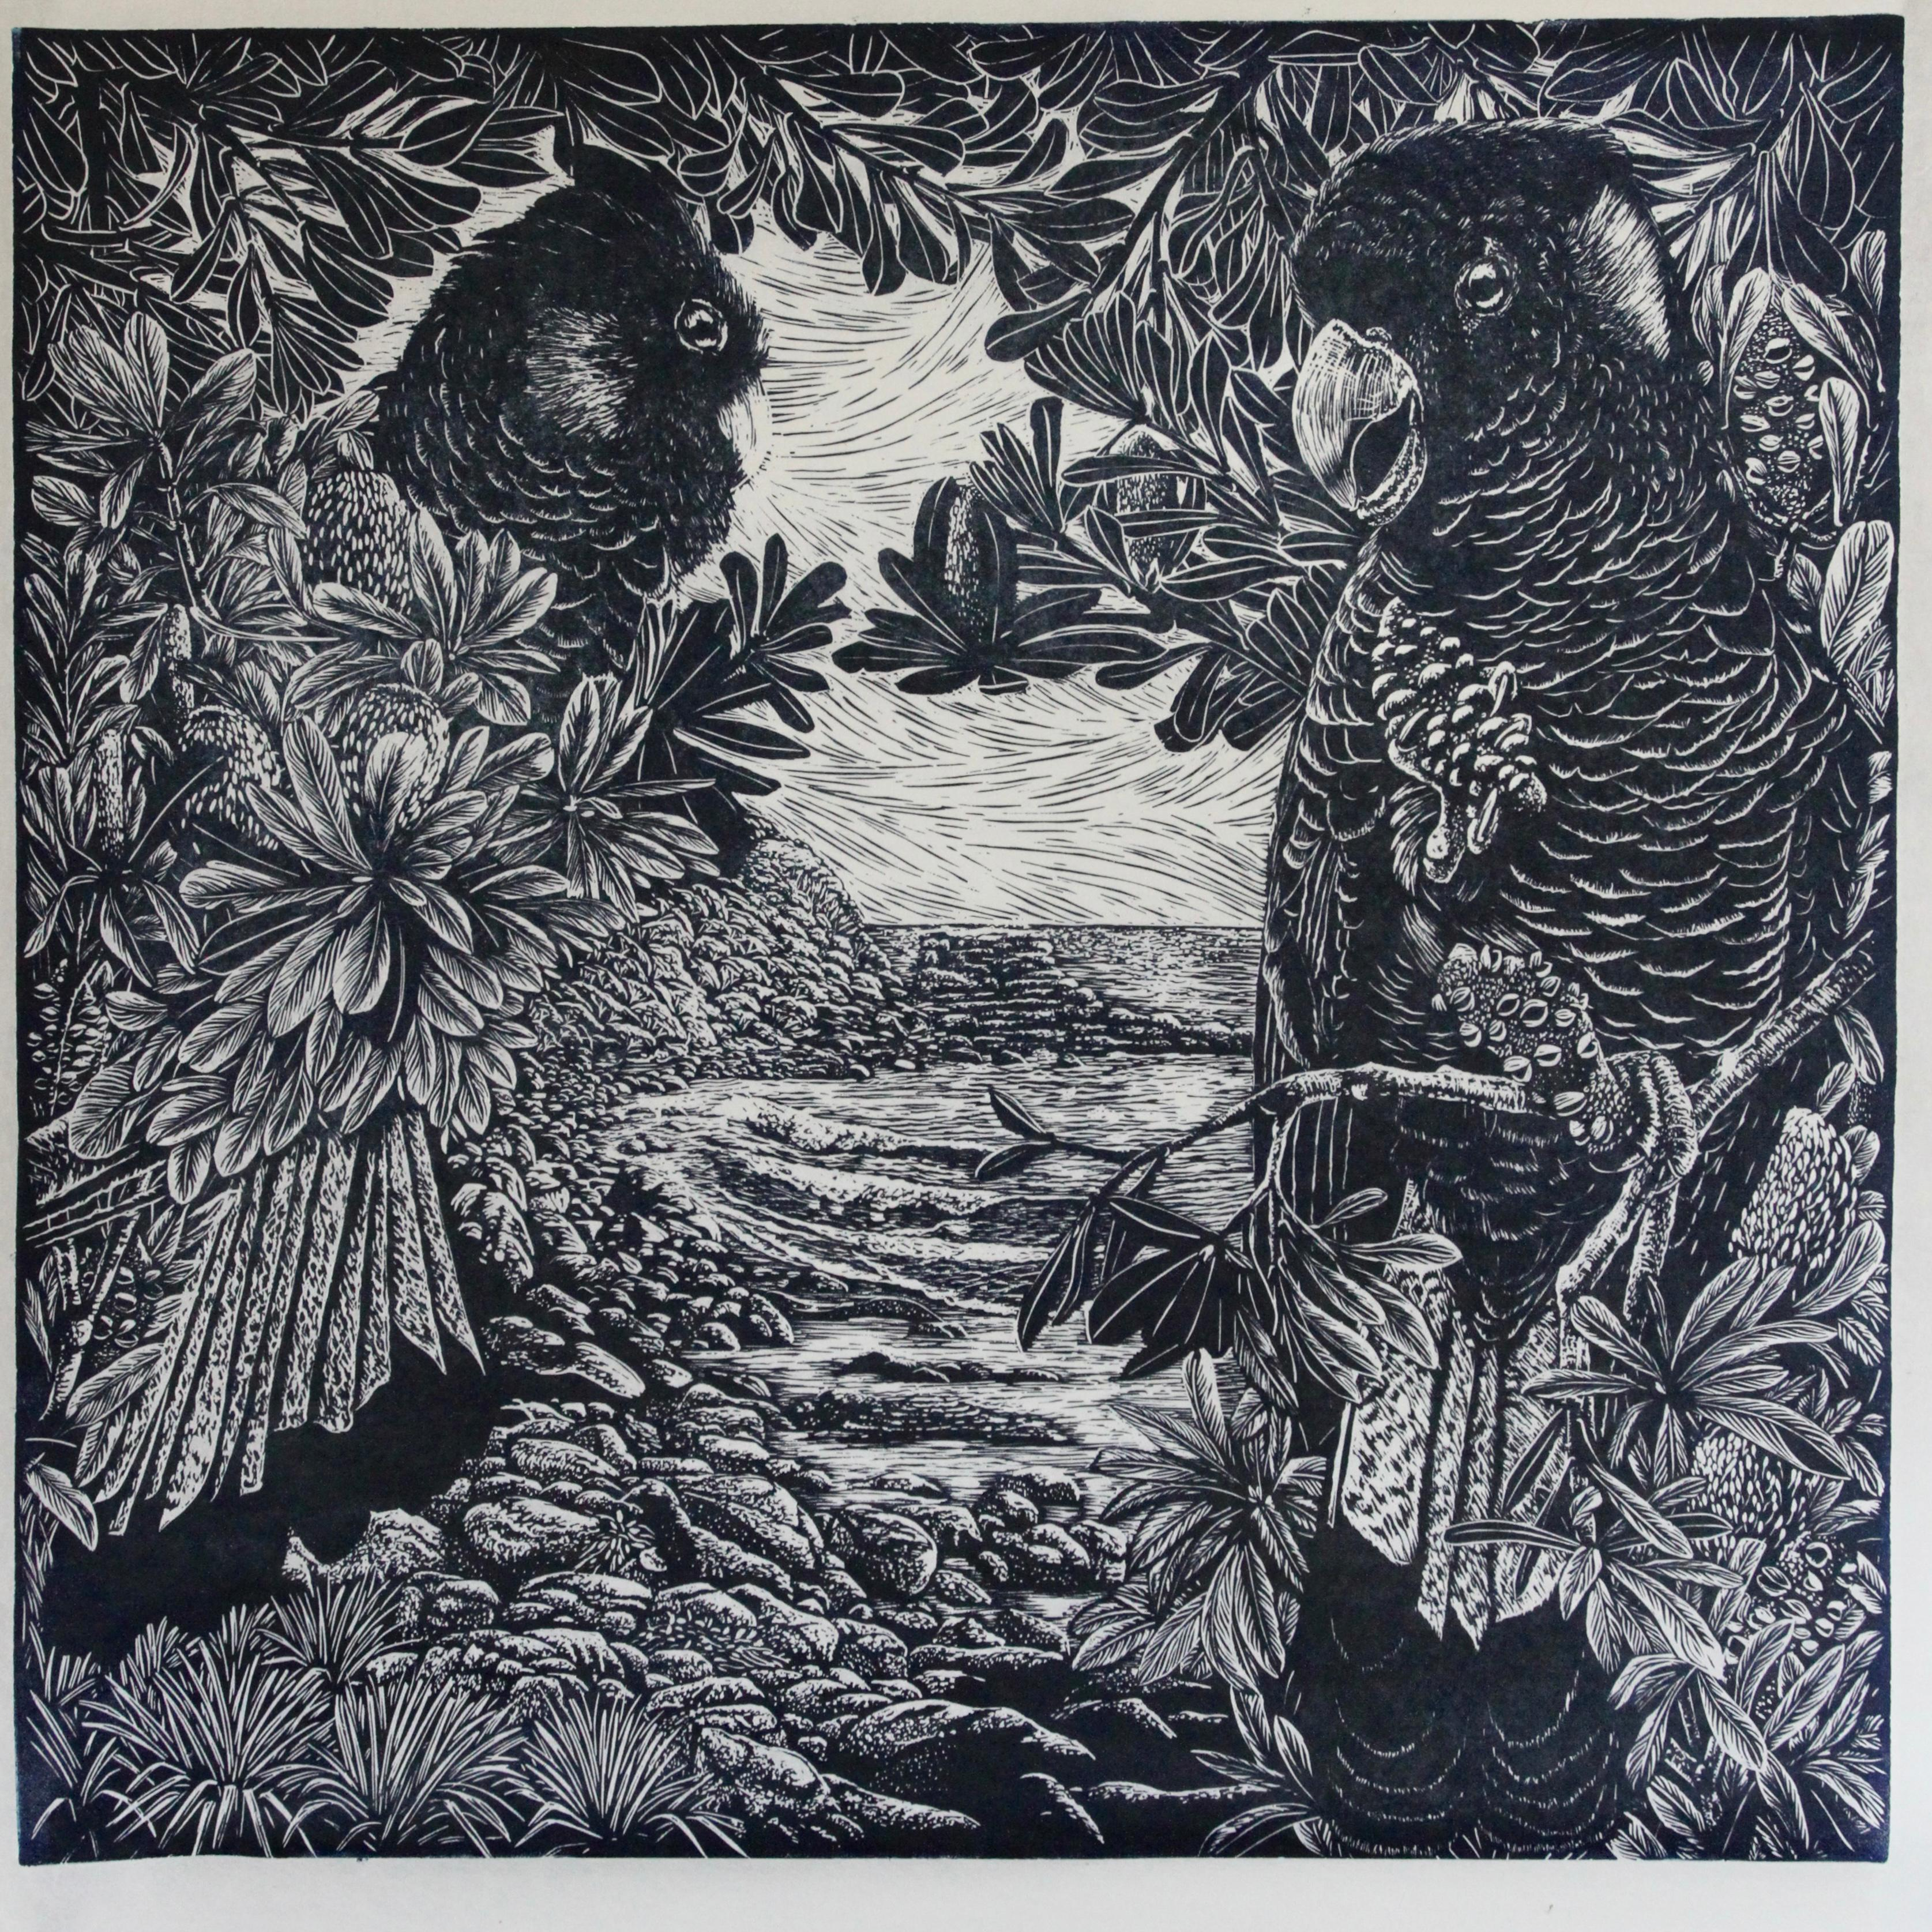 North End Mollymook - Relief Linocut Print of Yellow Tailed Black Cockatoos